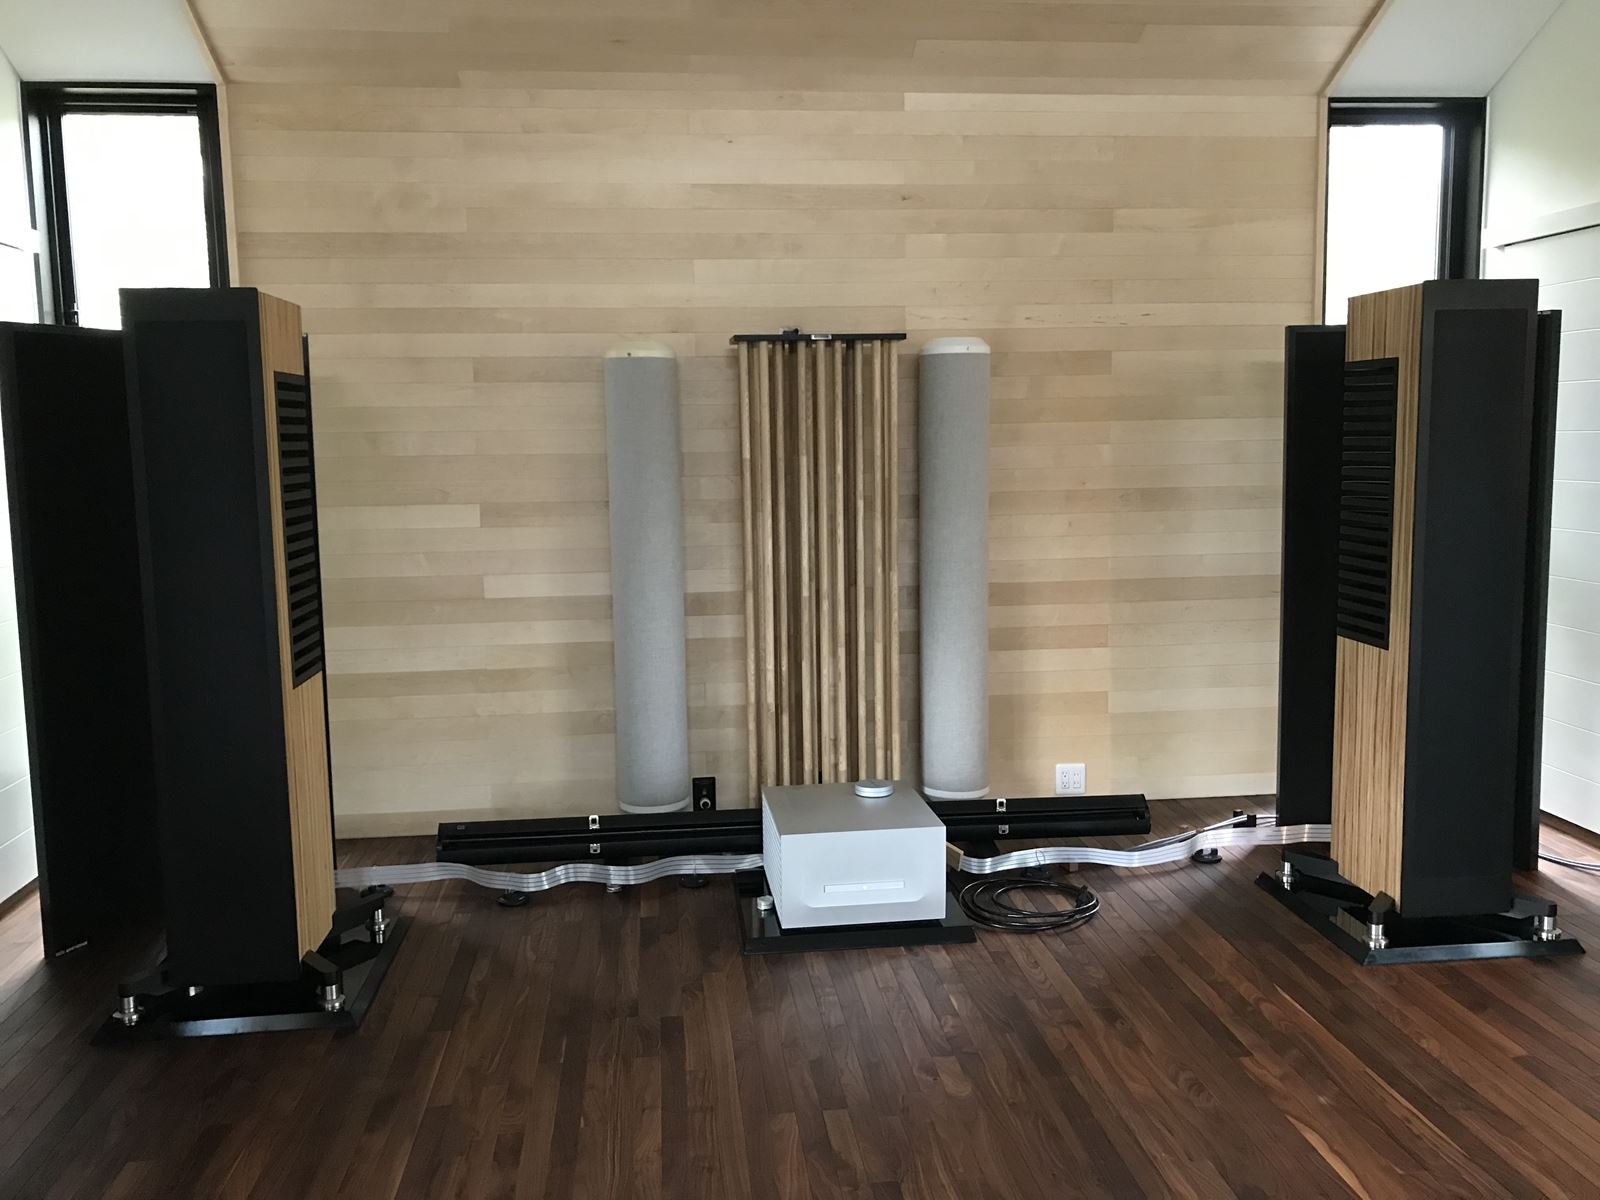 How to efficiently improve sound absorption in an audio recording room (Part 2)